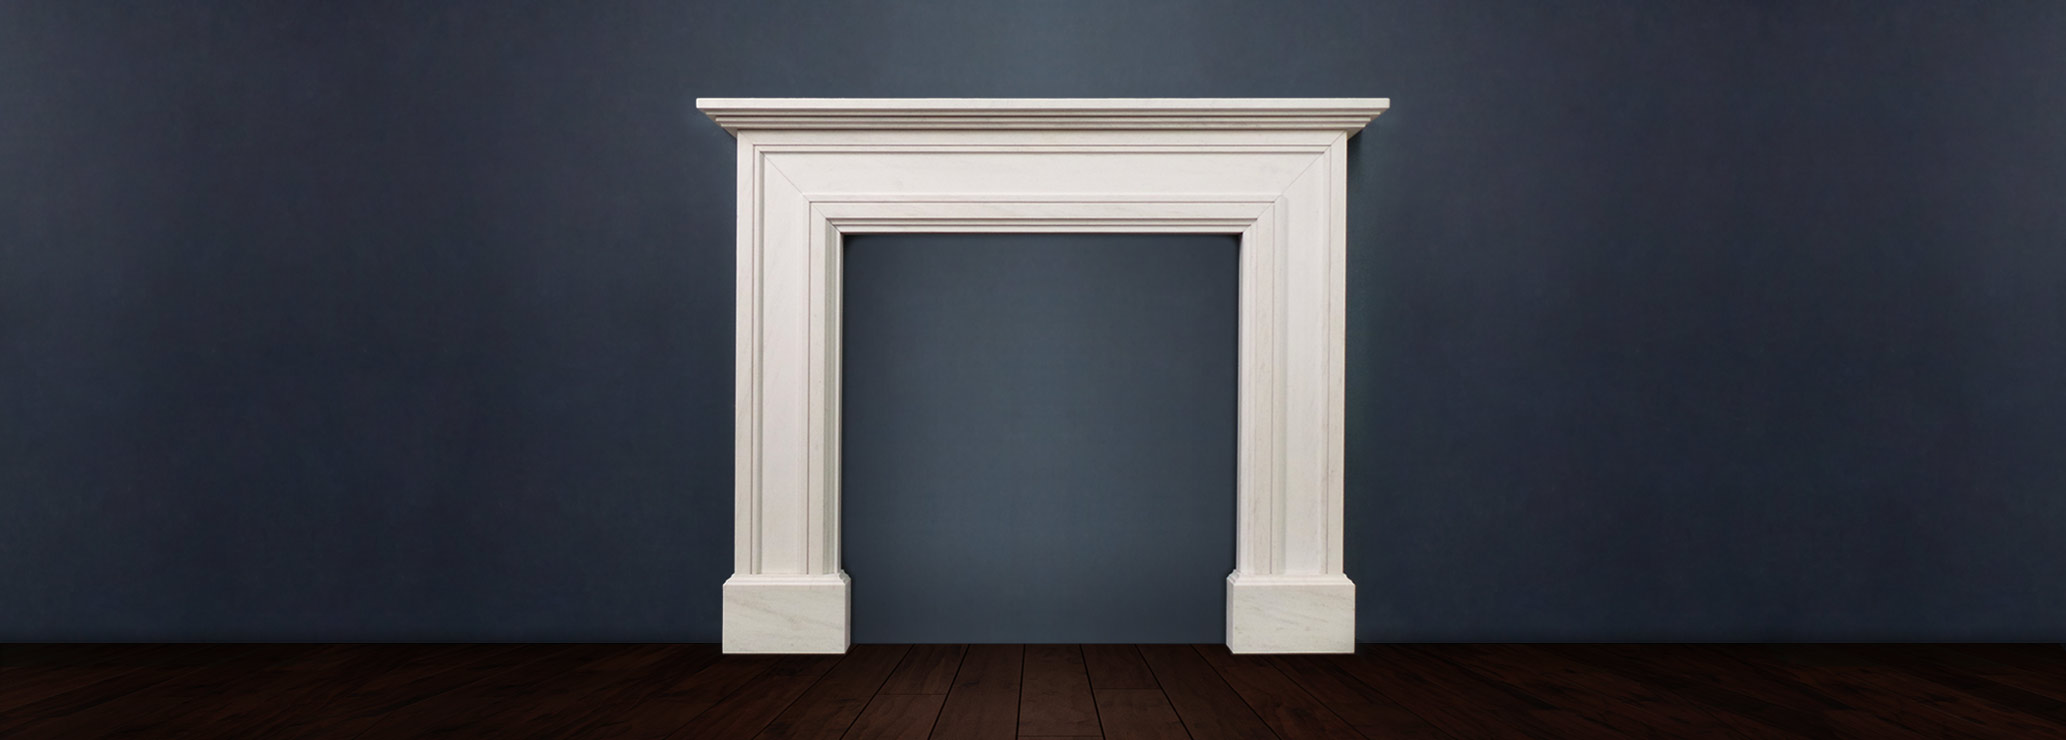 The Madrid fireplace available in limestone boasts a bold architectural design with lines that sweep across the legs and mantle